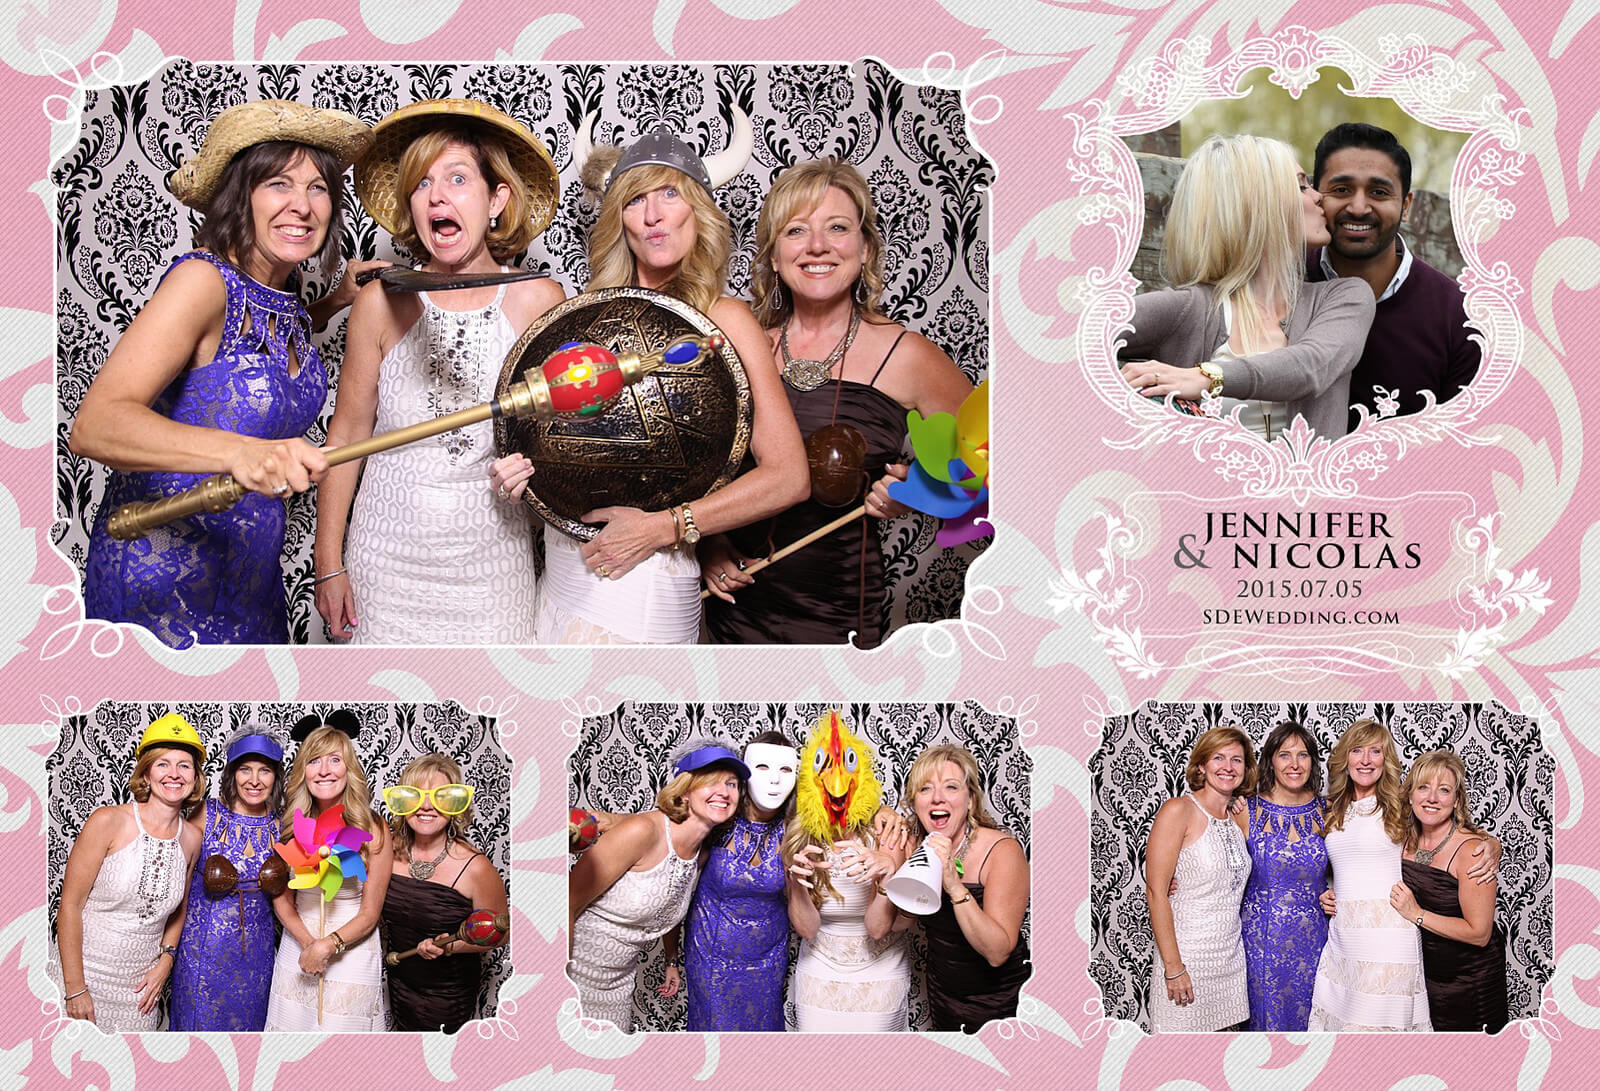 Toronto Liberty Grand Wedding Reception Photo Booth Rental 4